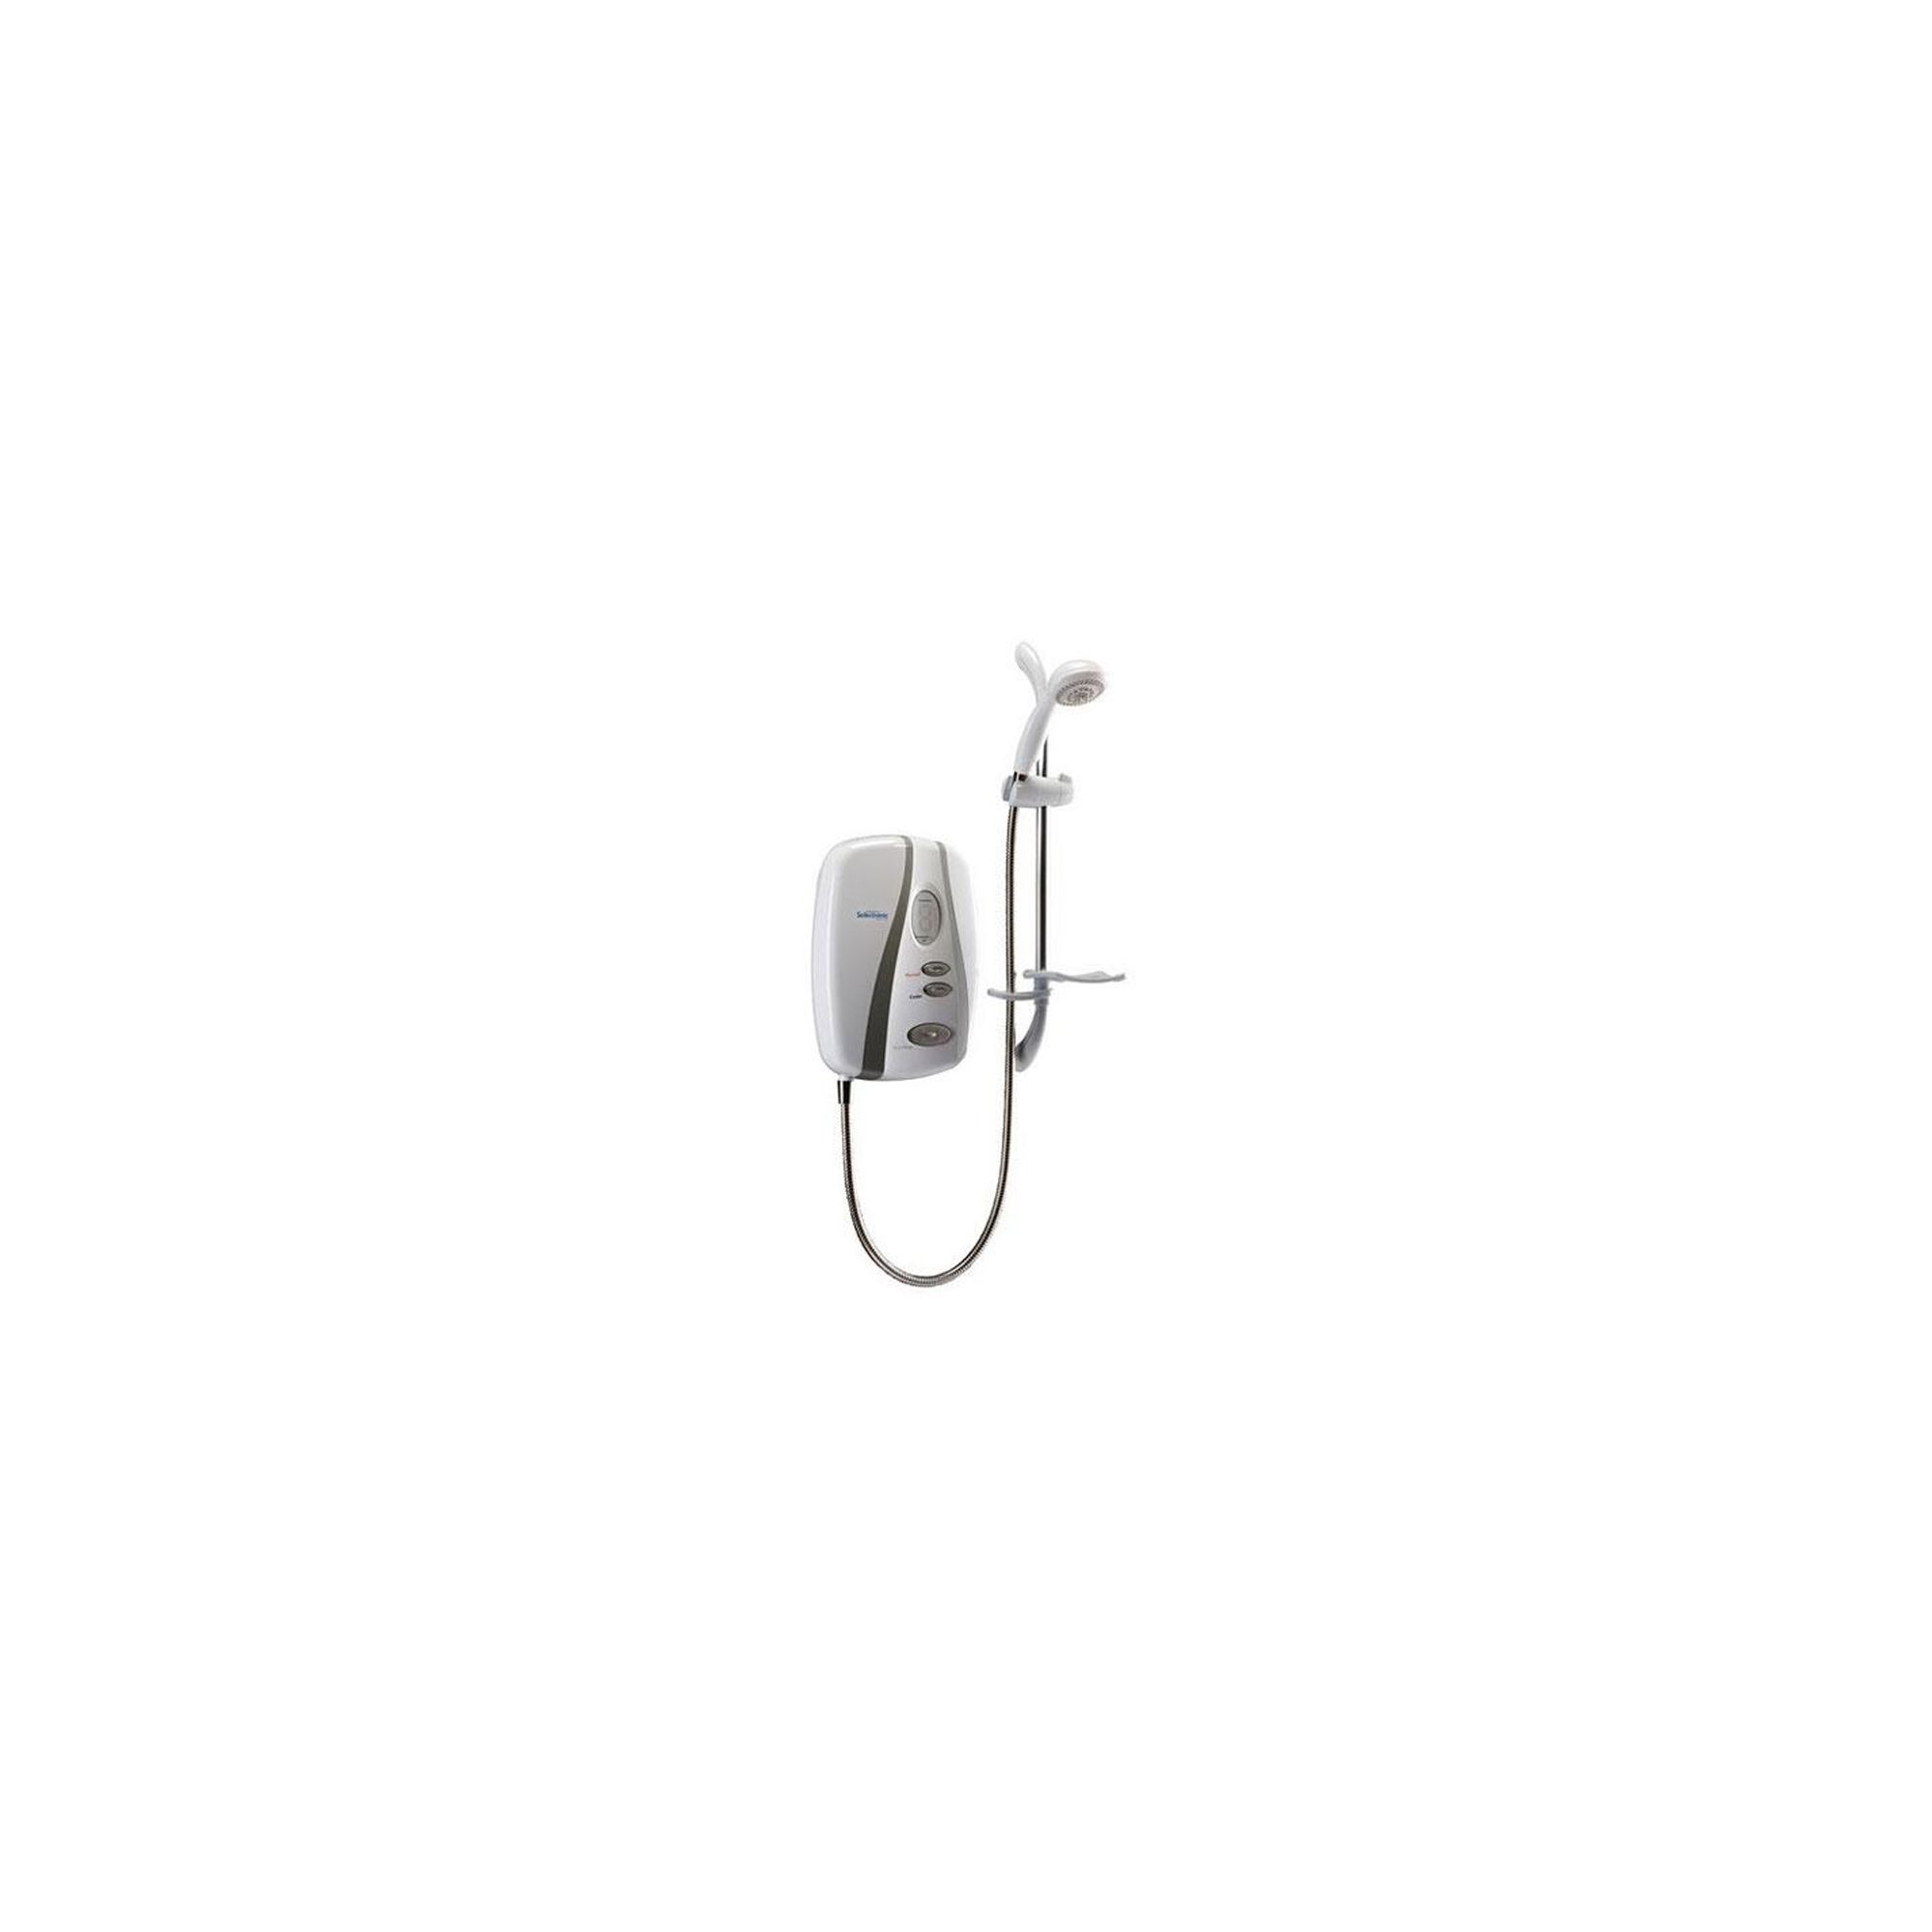 Redring Selectronic Premier Standard Electric Shower White/Chrome 8.5kW at Tesco Direct